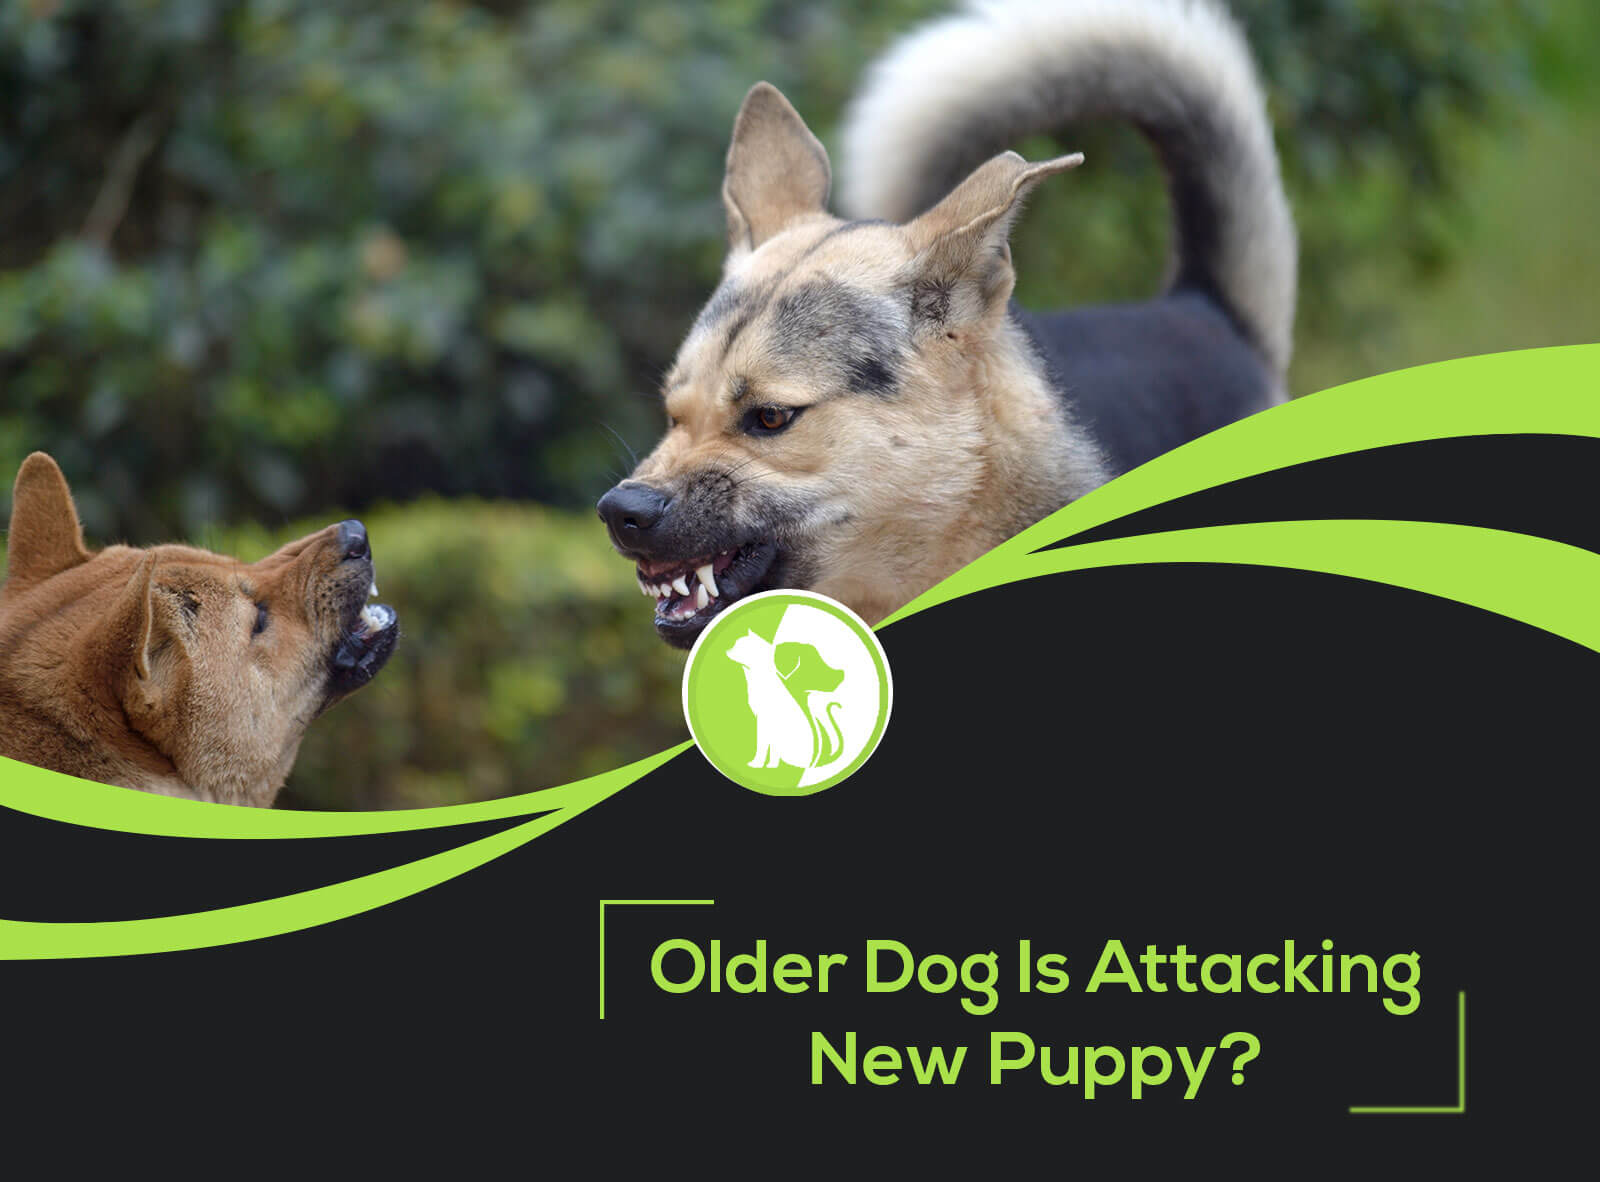 What to Do If My Older Dog Is Attacking New Puppy